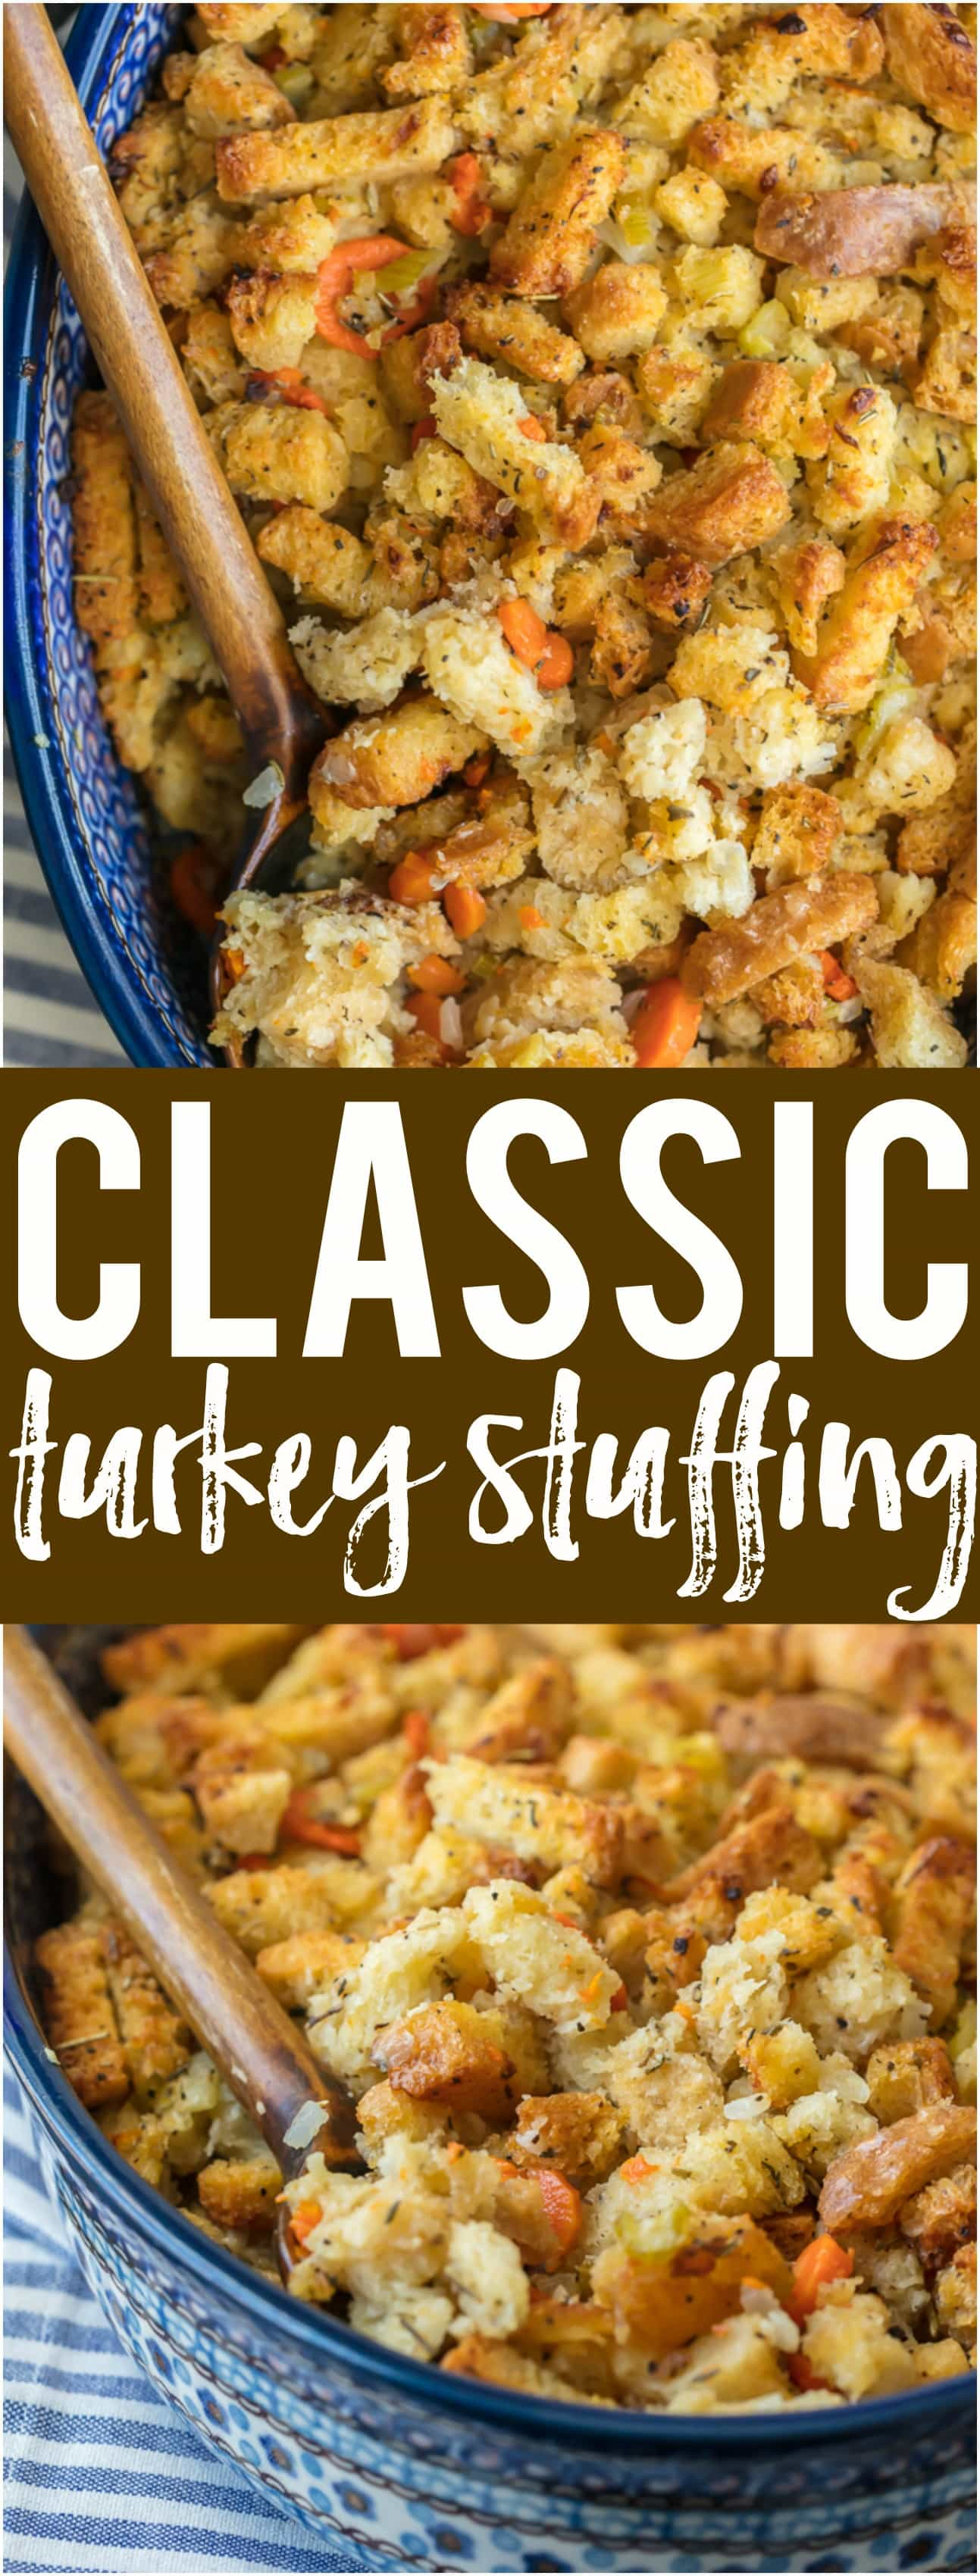 CLASSIC TURKEY STUFFING is a must make for Thanksgiving and Christmas! You cannot go wrong with this classic dressing during the holidays. So much flavor, crunch, and goodness.